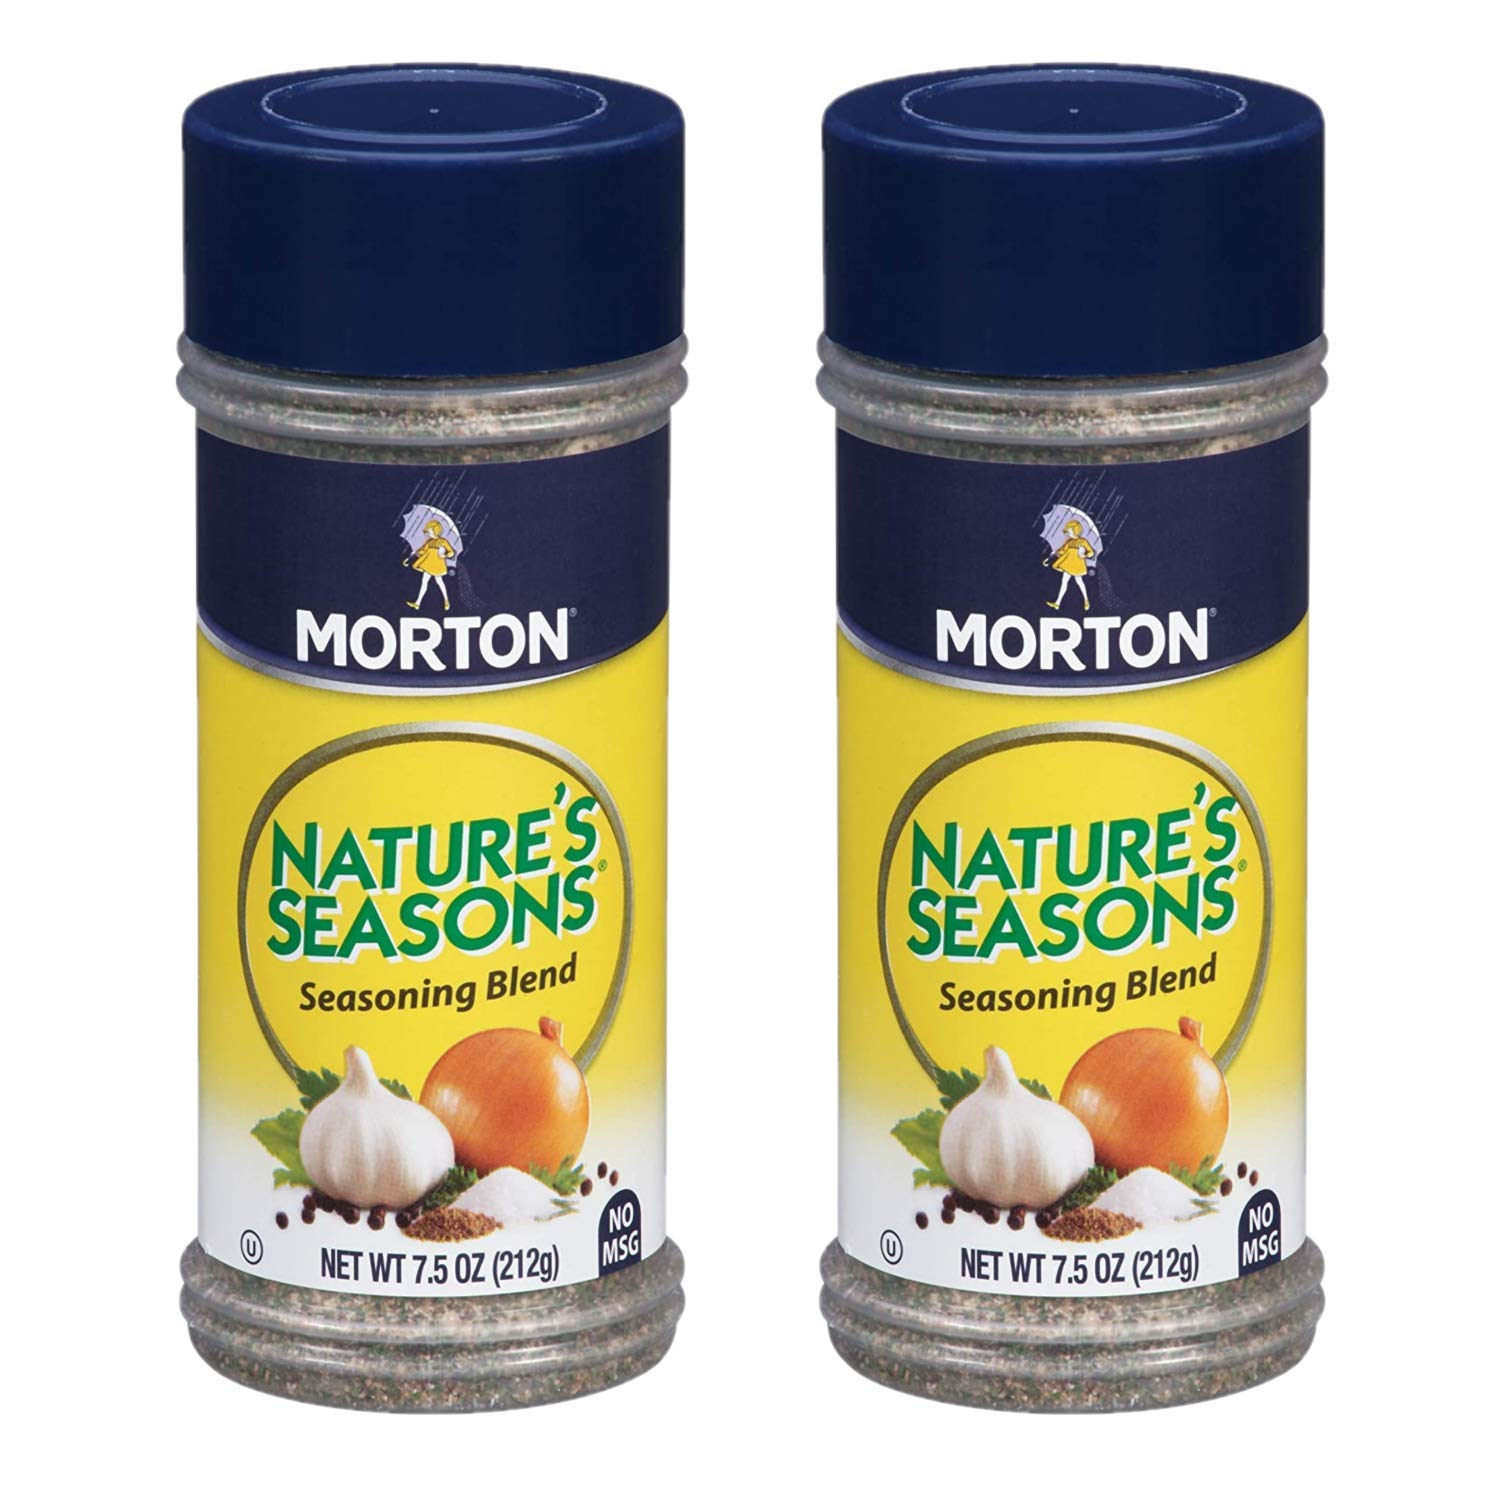 Morton Nature's Seasons Seasoning Blend 7.5oz Two Pack - Kosher Season Blend of Onion, Garlic, Salt, Pepper, and More - Two Pack Seasoning for Meats, Veggies, Potatoes